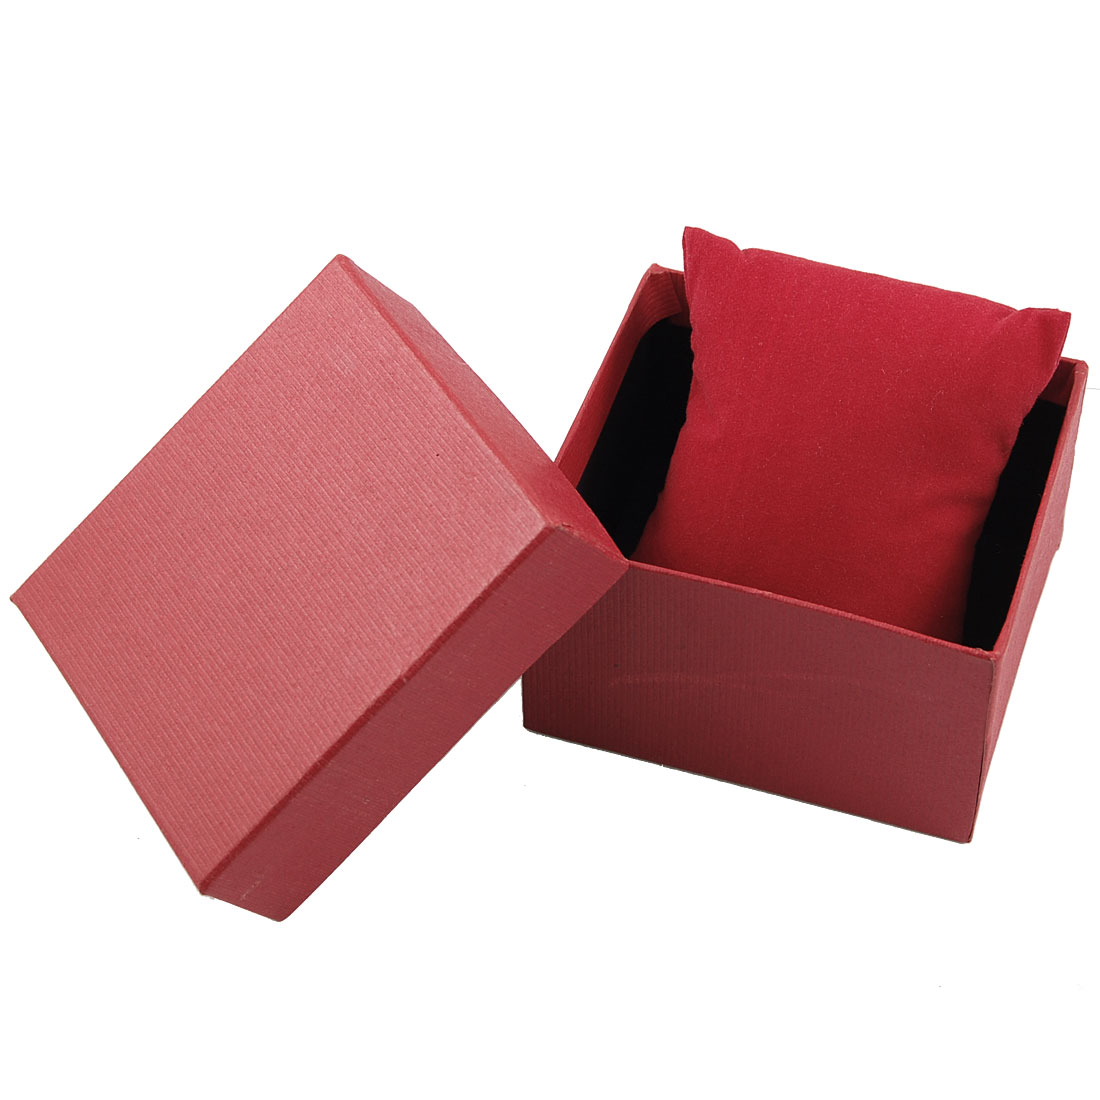 Gift Storage Wrapping Bracelet Wrist Watch Holder Box Case Red